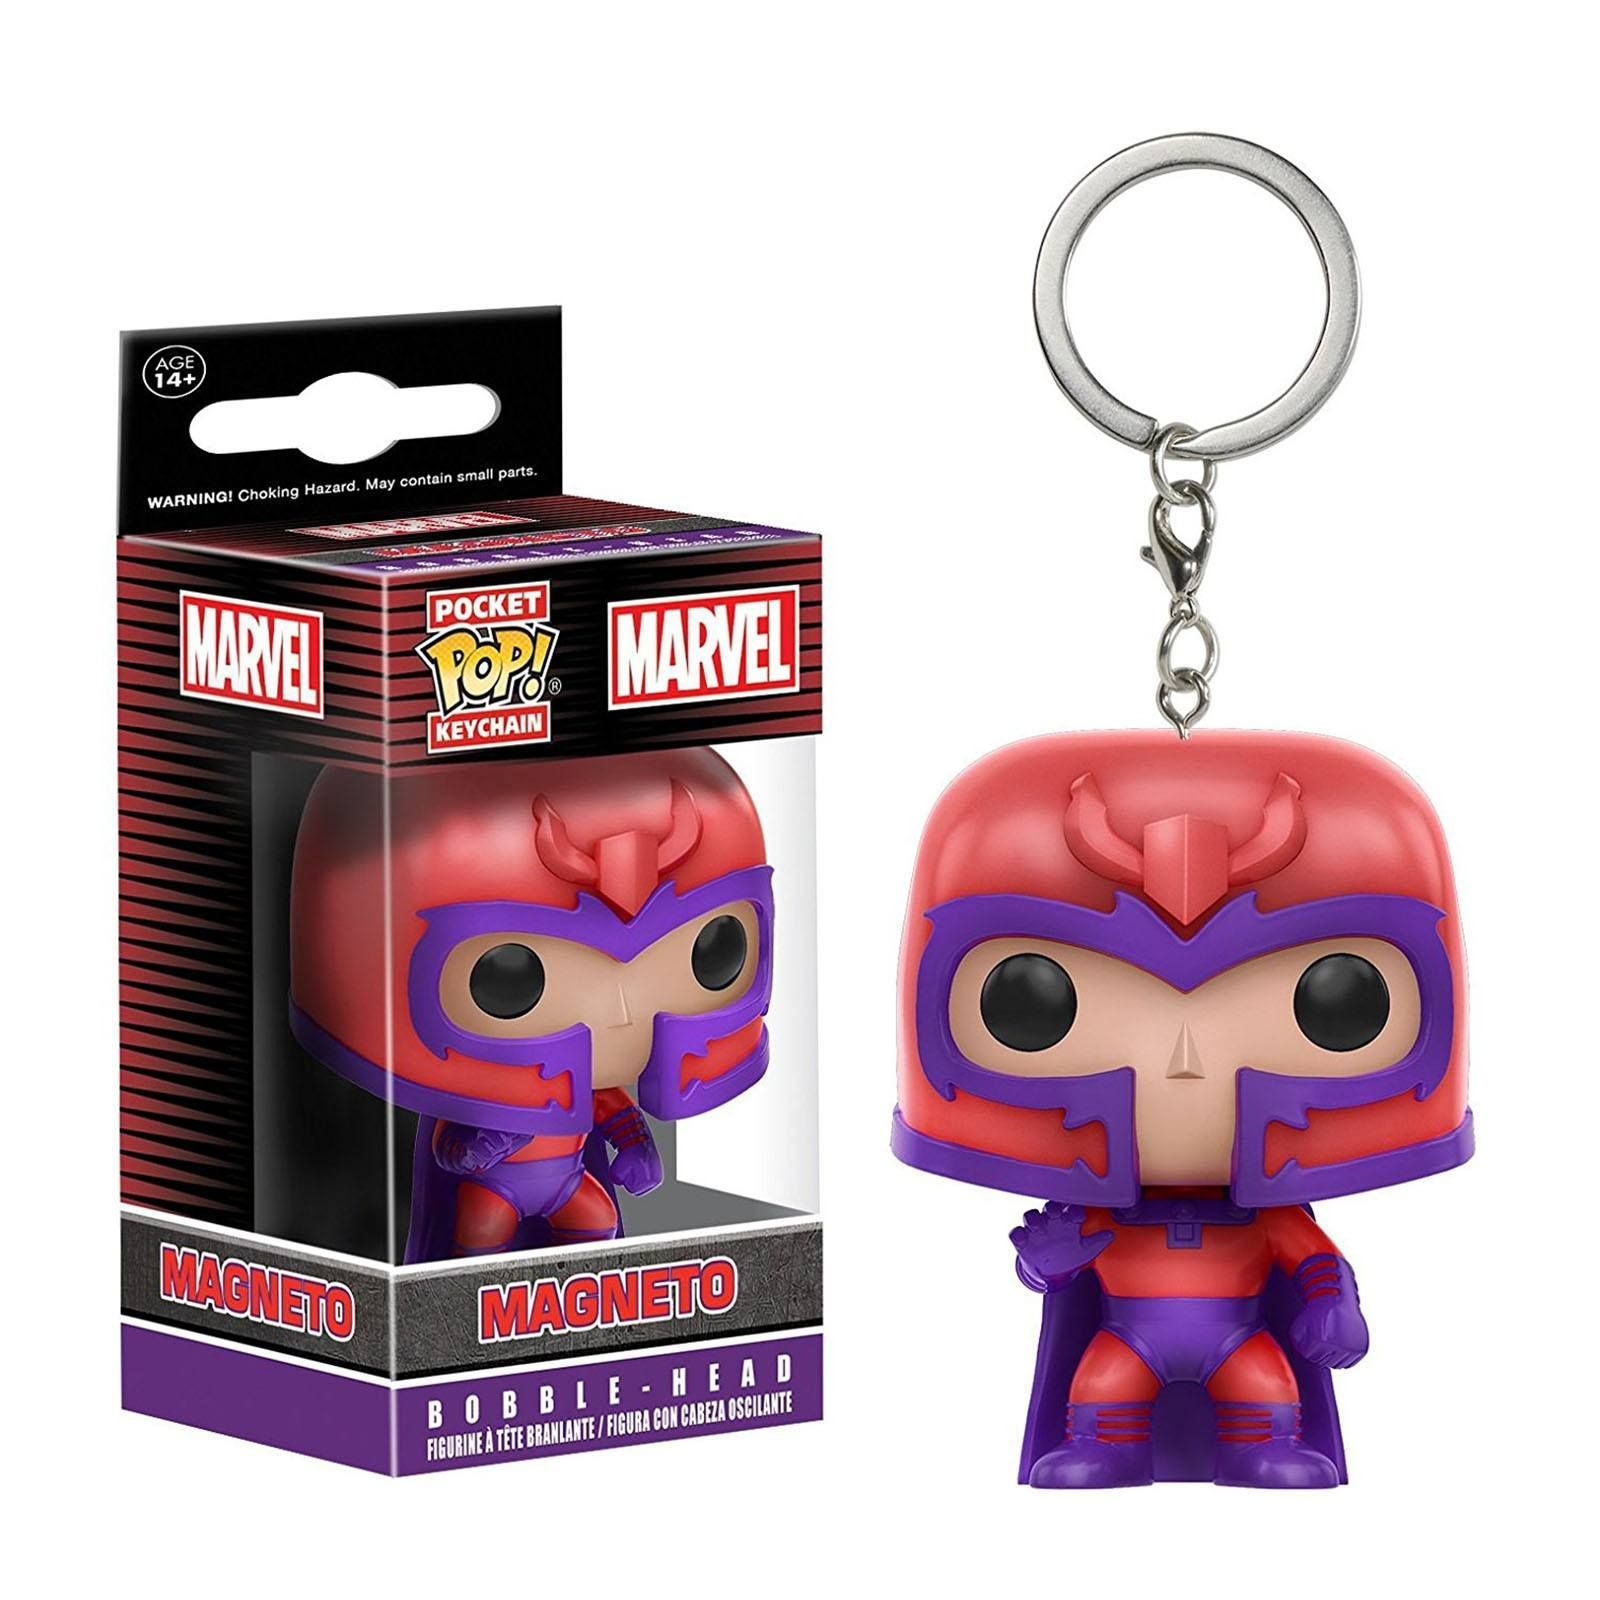 X-Men Magneto Pocket Pop Funko Key Chain Vinyl Action Figure New In Box